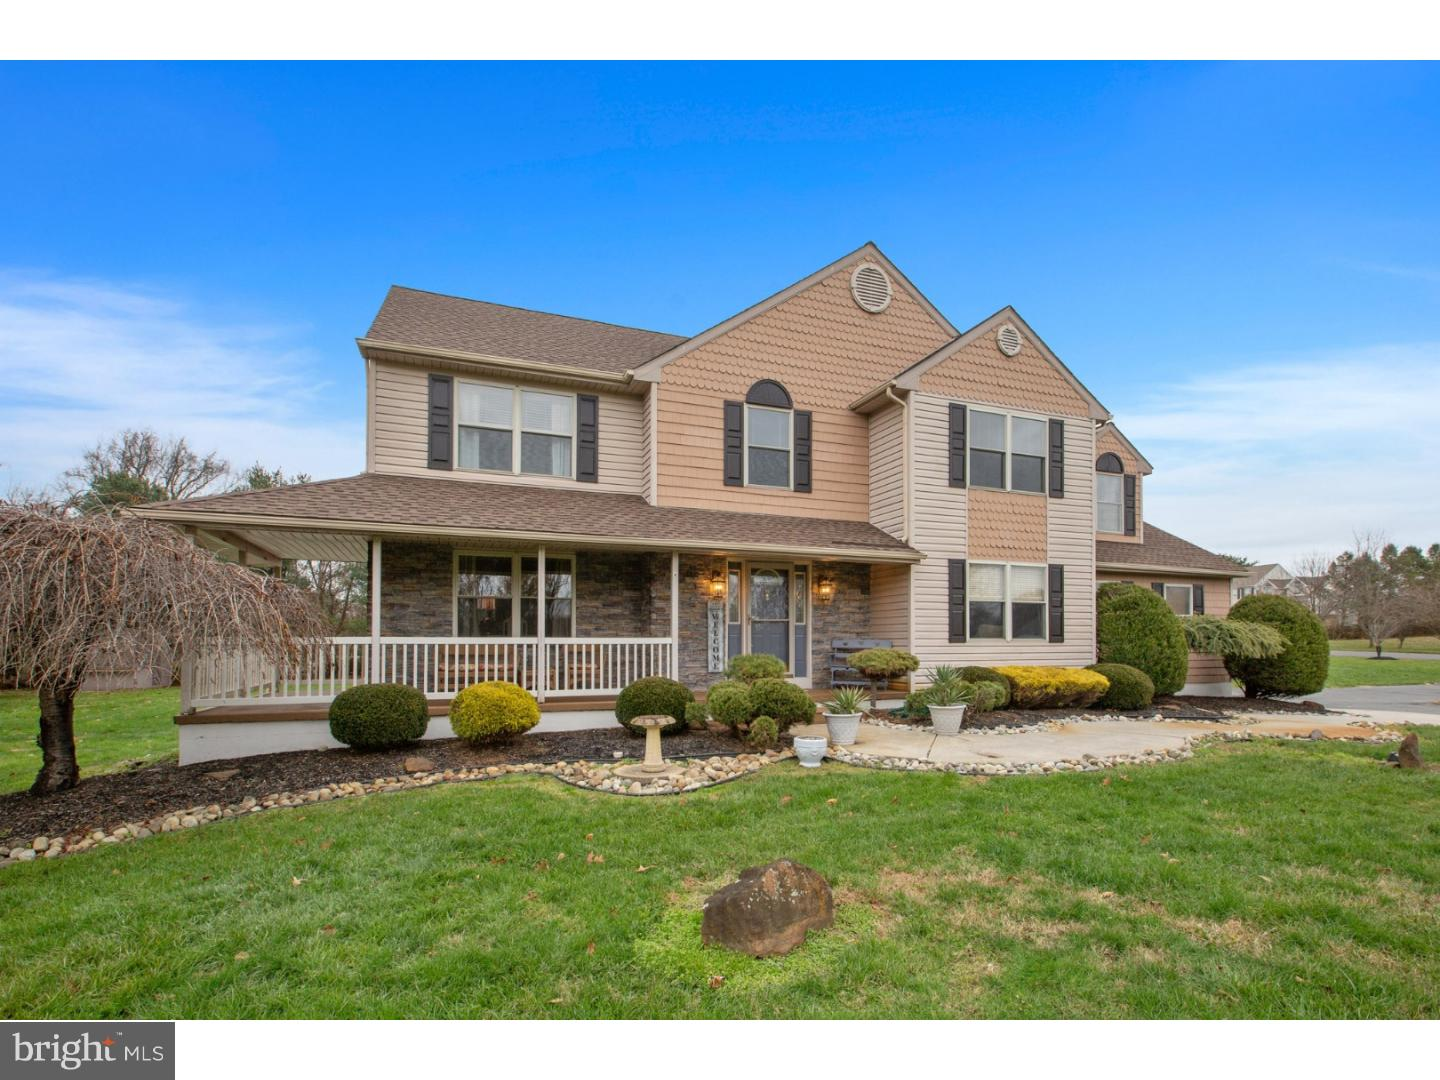 Single Family Home for Sale at 177 KIRSCHLING Drive Swedesboro, New Jersey 08085 United States